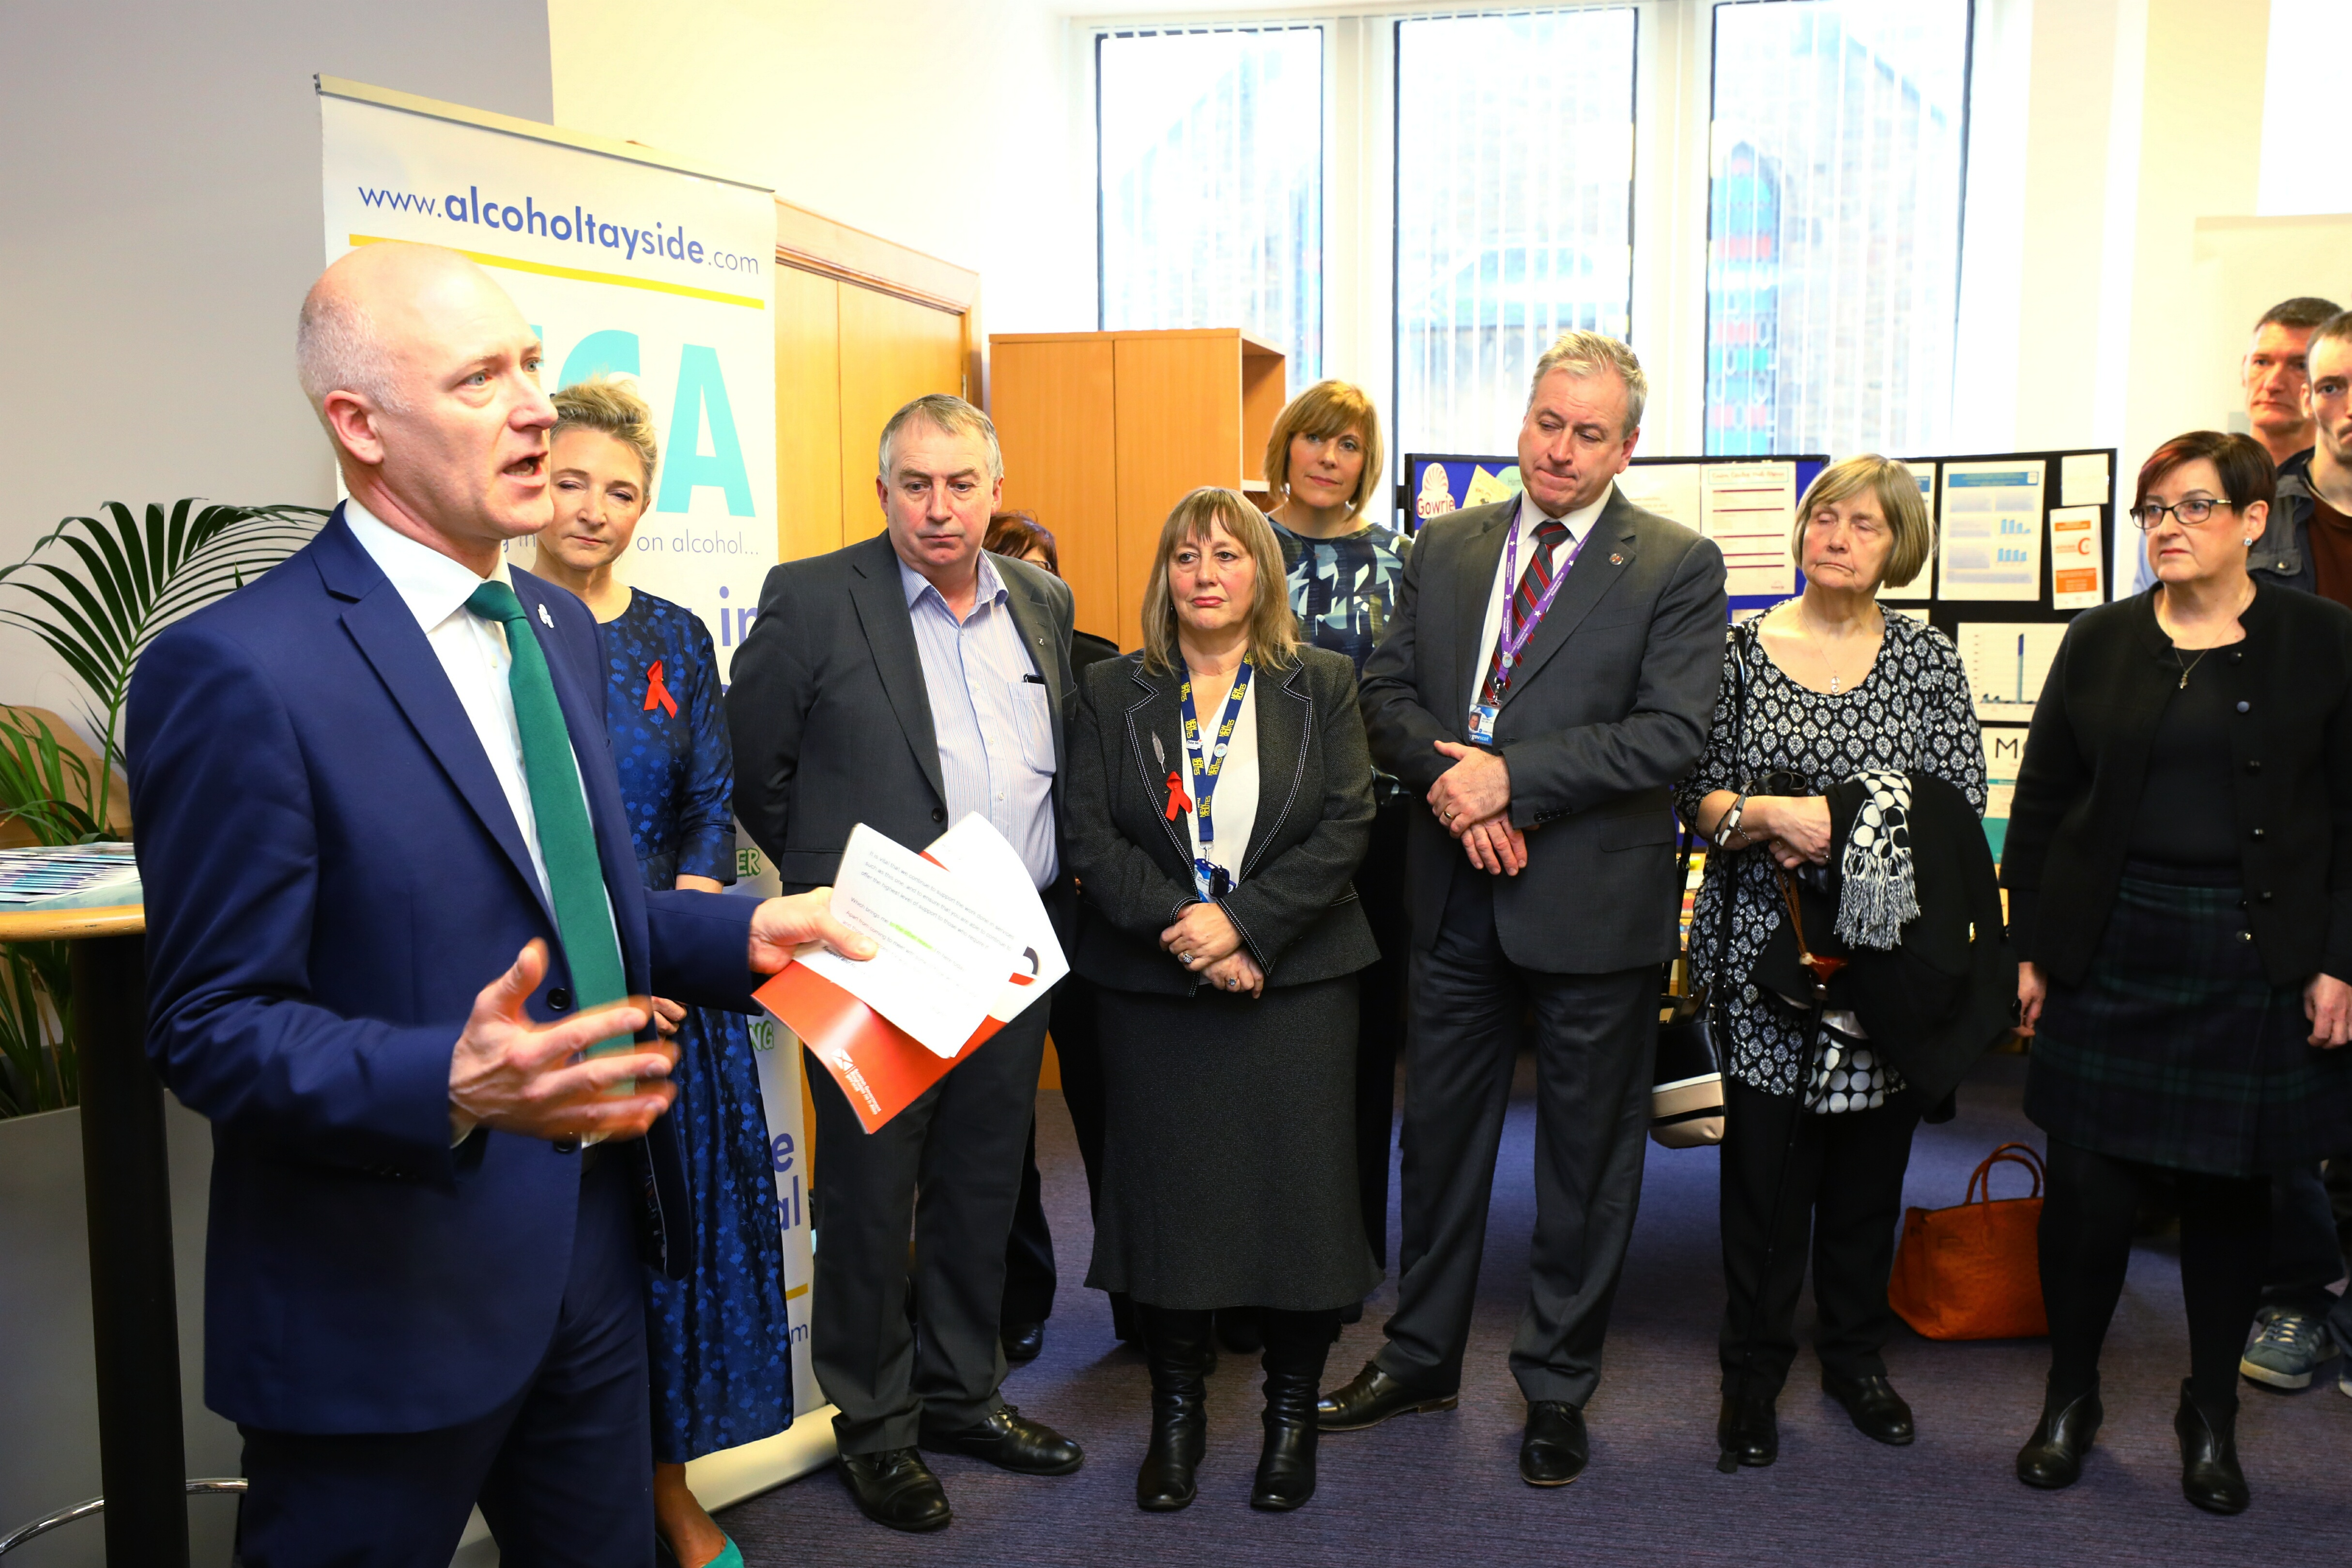 Public Health Minister Joe FitzPatrick MSP at the Cairn Centre in Dundee, launching the new alcohol and drugs strategy Rights, Respect and Recovery.